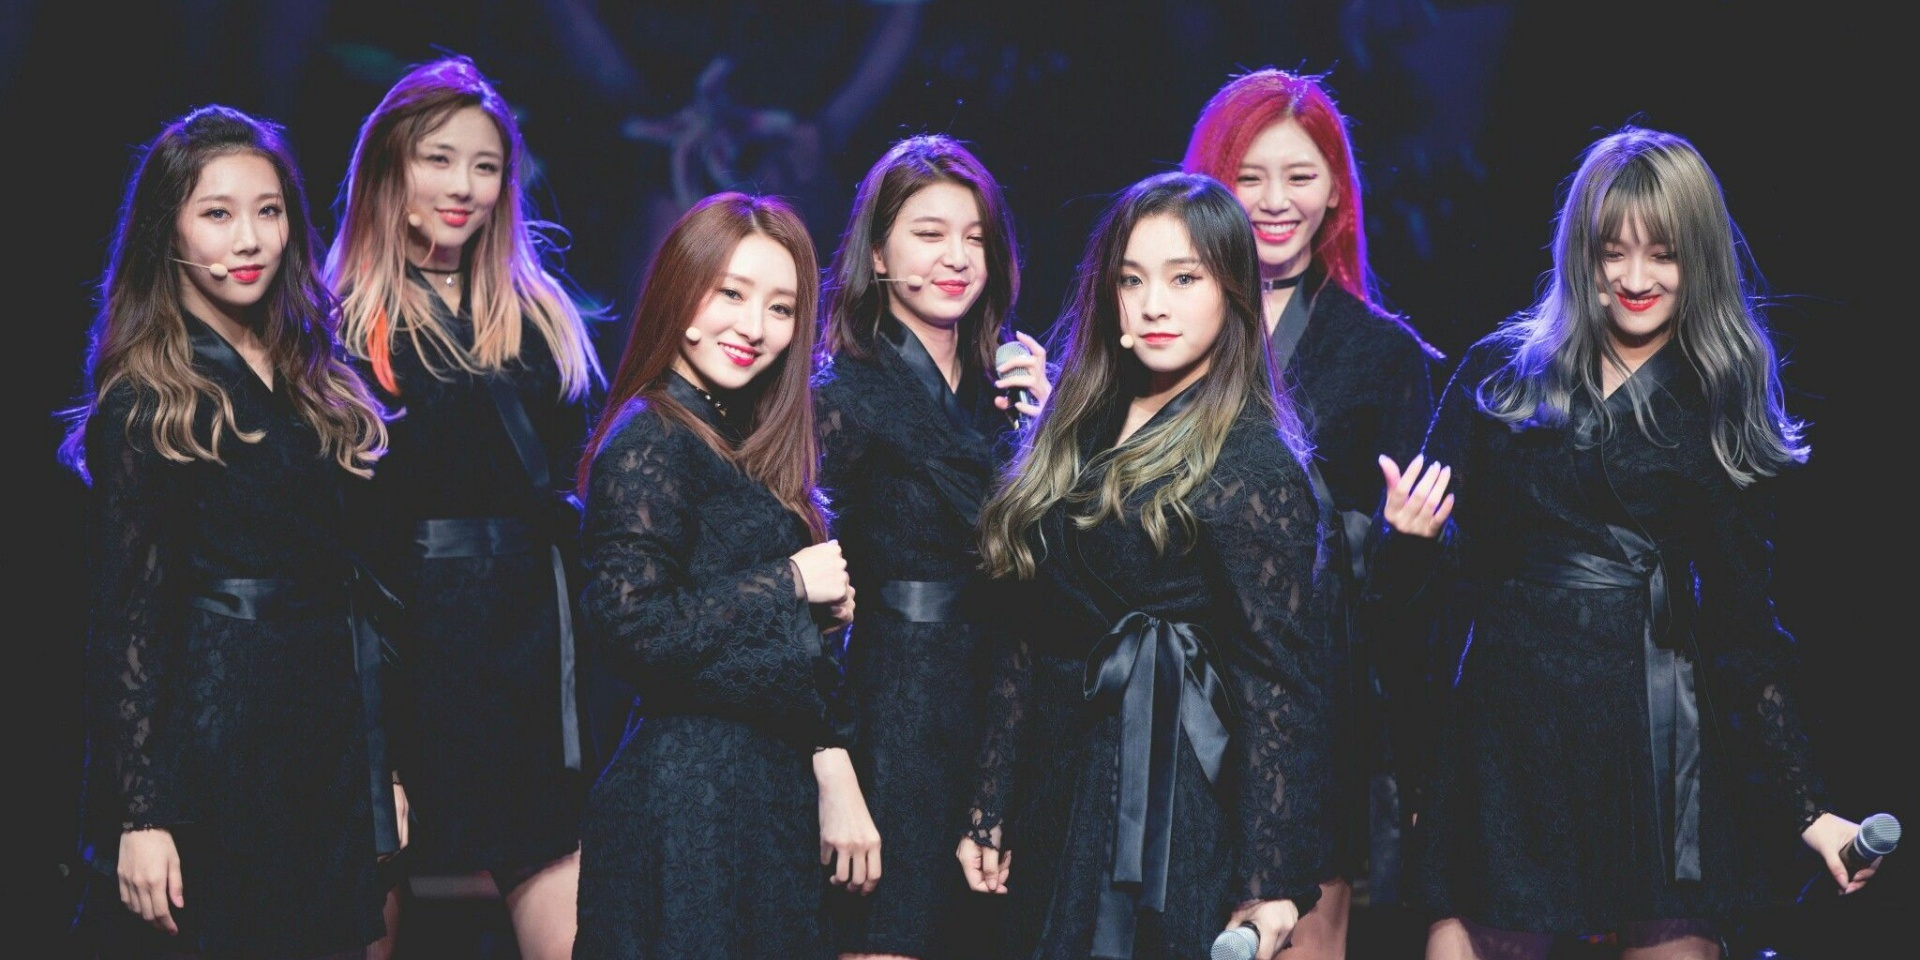 Dreamcatcher announces Southeast Asia Tour – includes stops in Singapore, Indonesia and Philippines